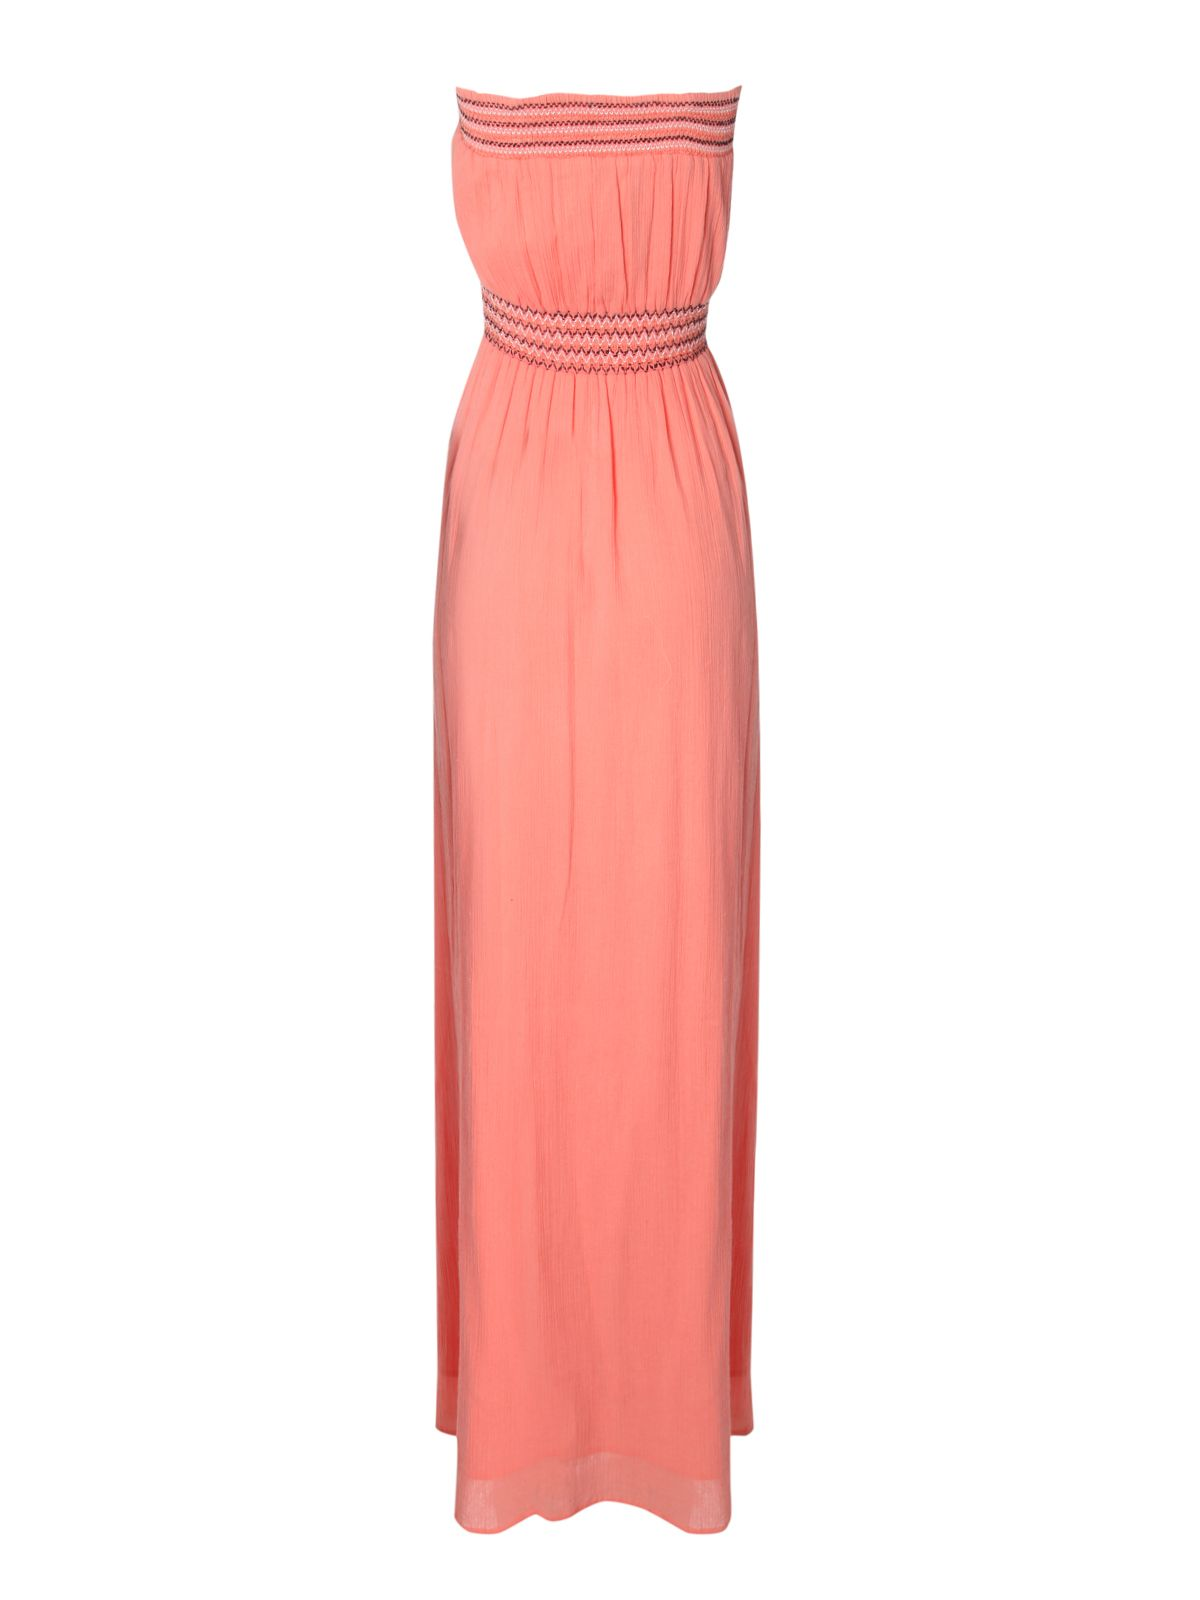 Sheered Bust Maxi Dress